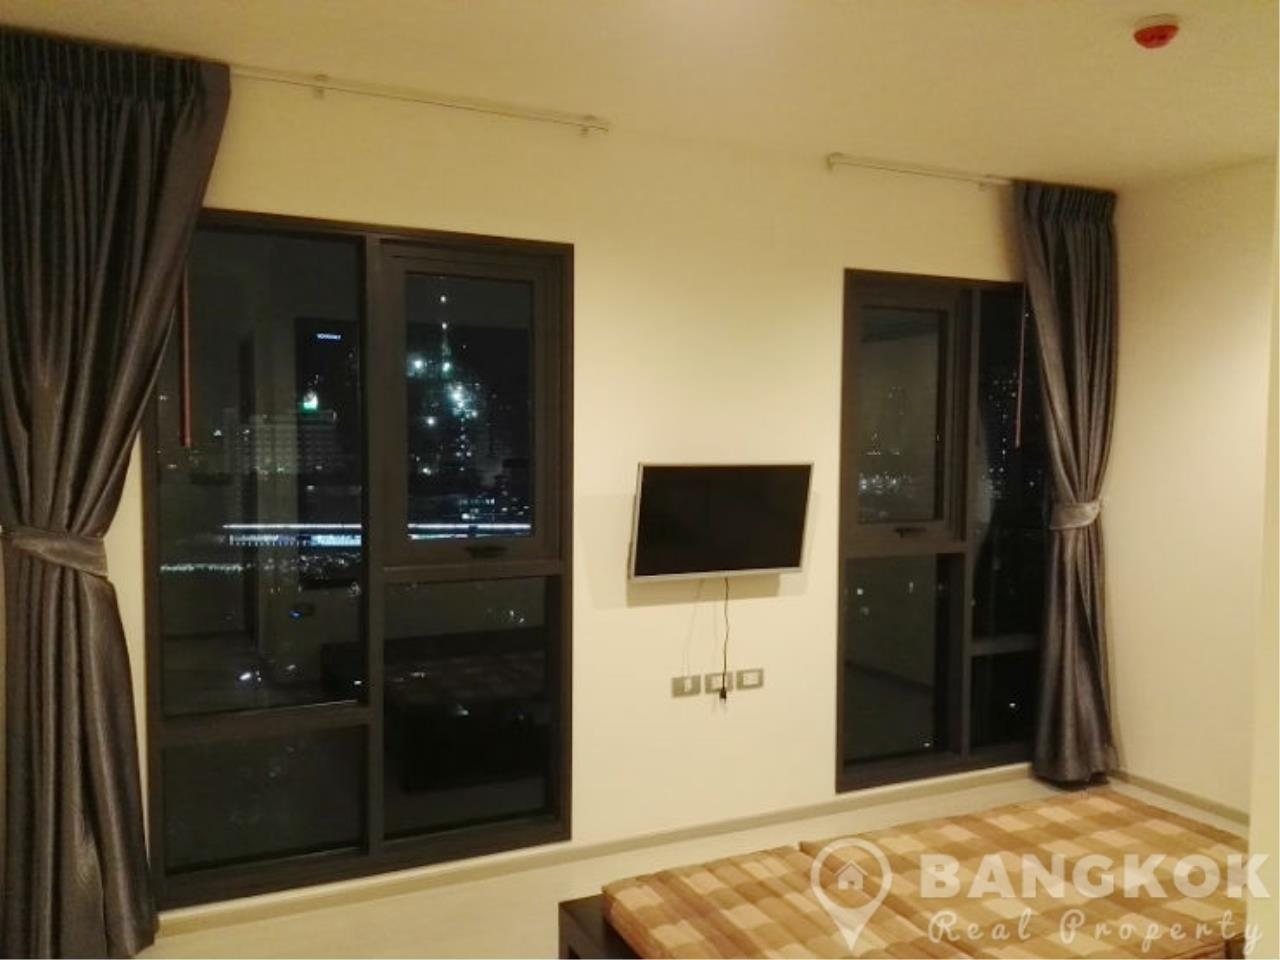 Bangkok Real Property Agency's Rhythm Sukhumvit 36-38 | Brand New Spacious 1 Bed near BTS 3